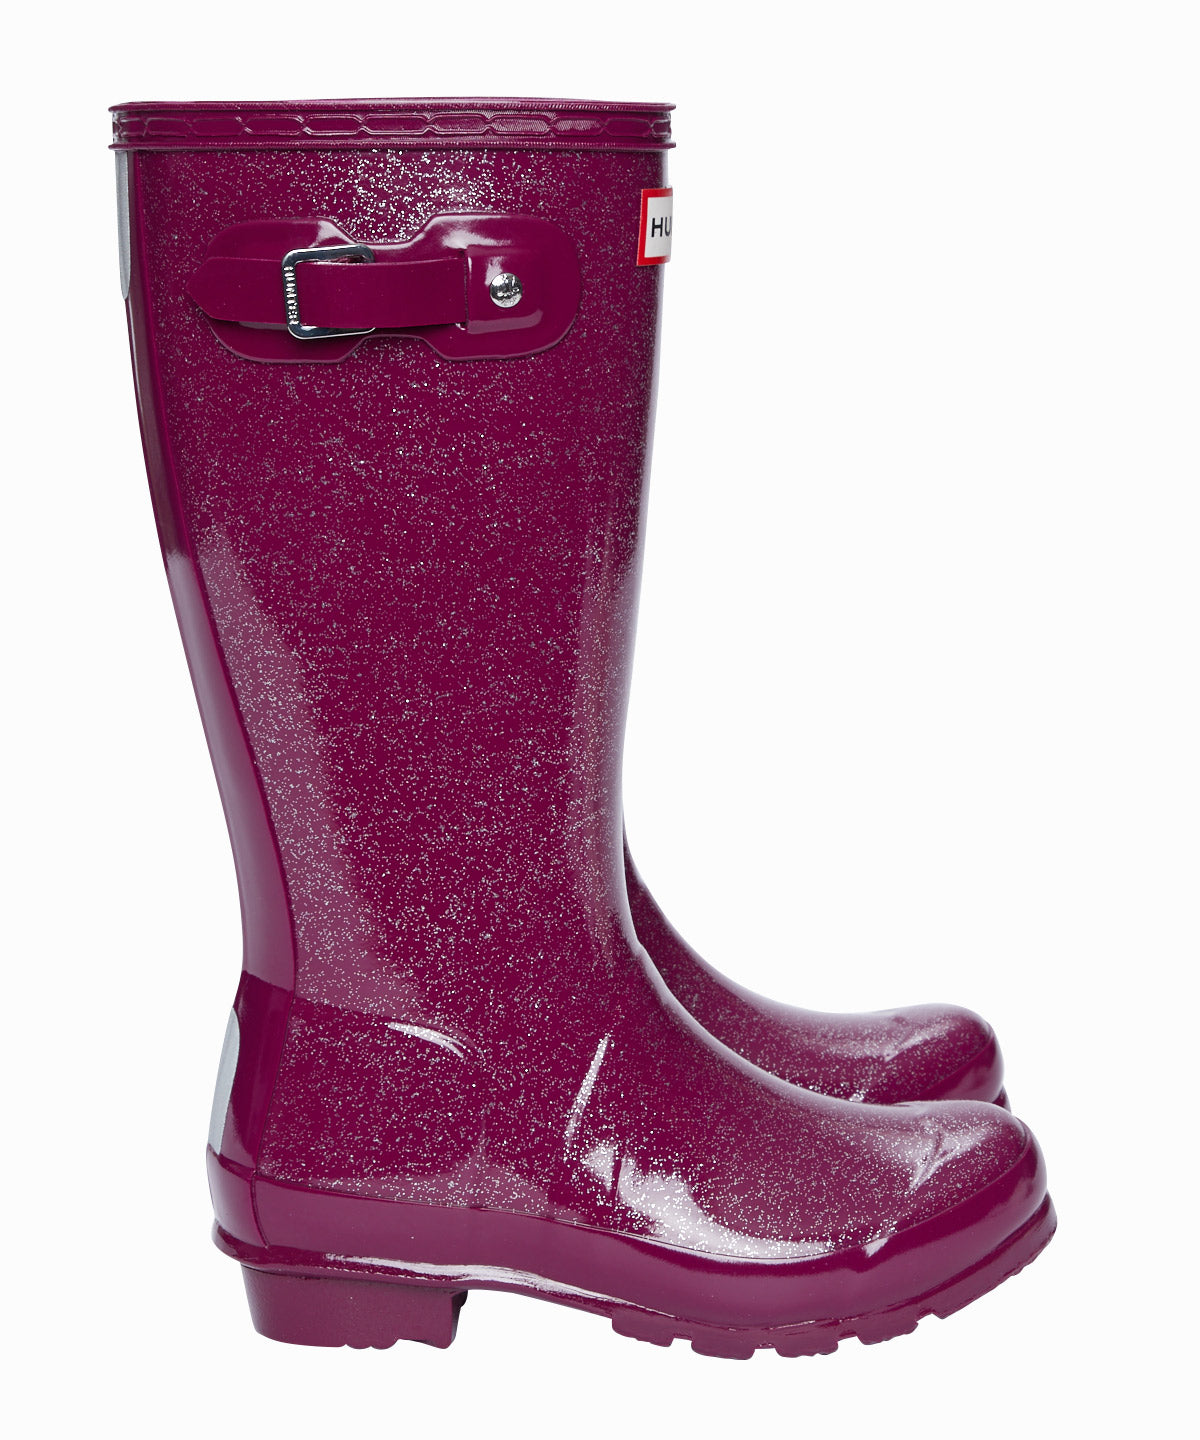 Original Kid Purple Glitter Rainboots